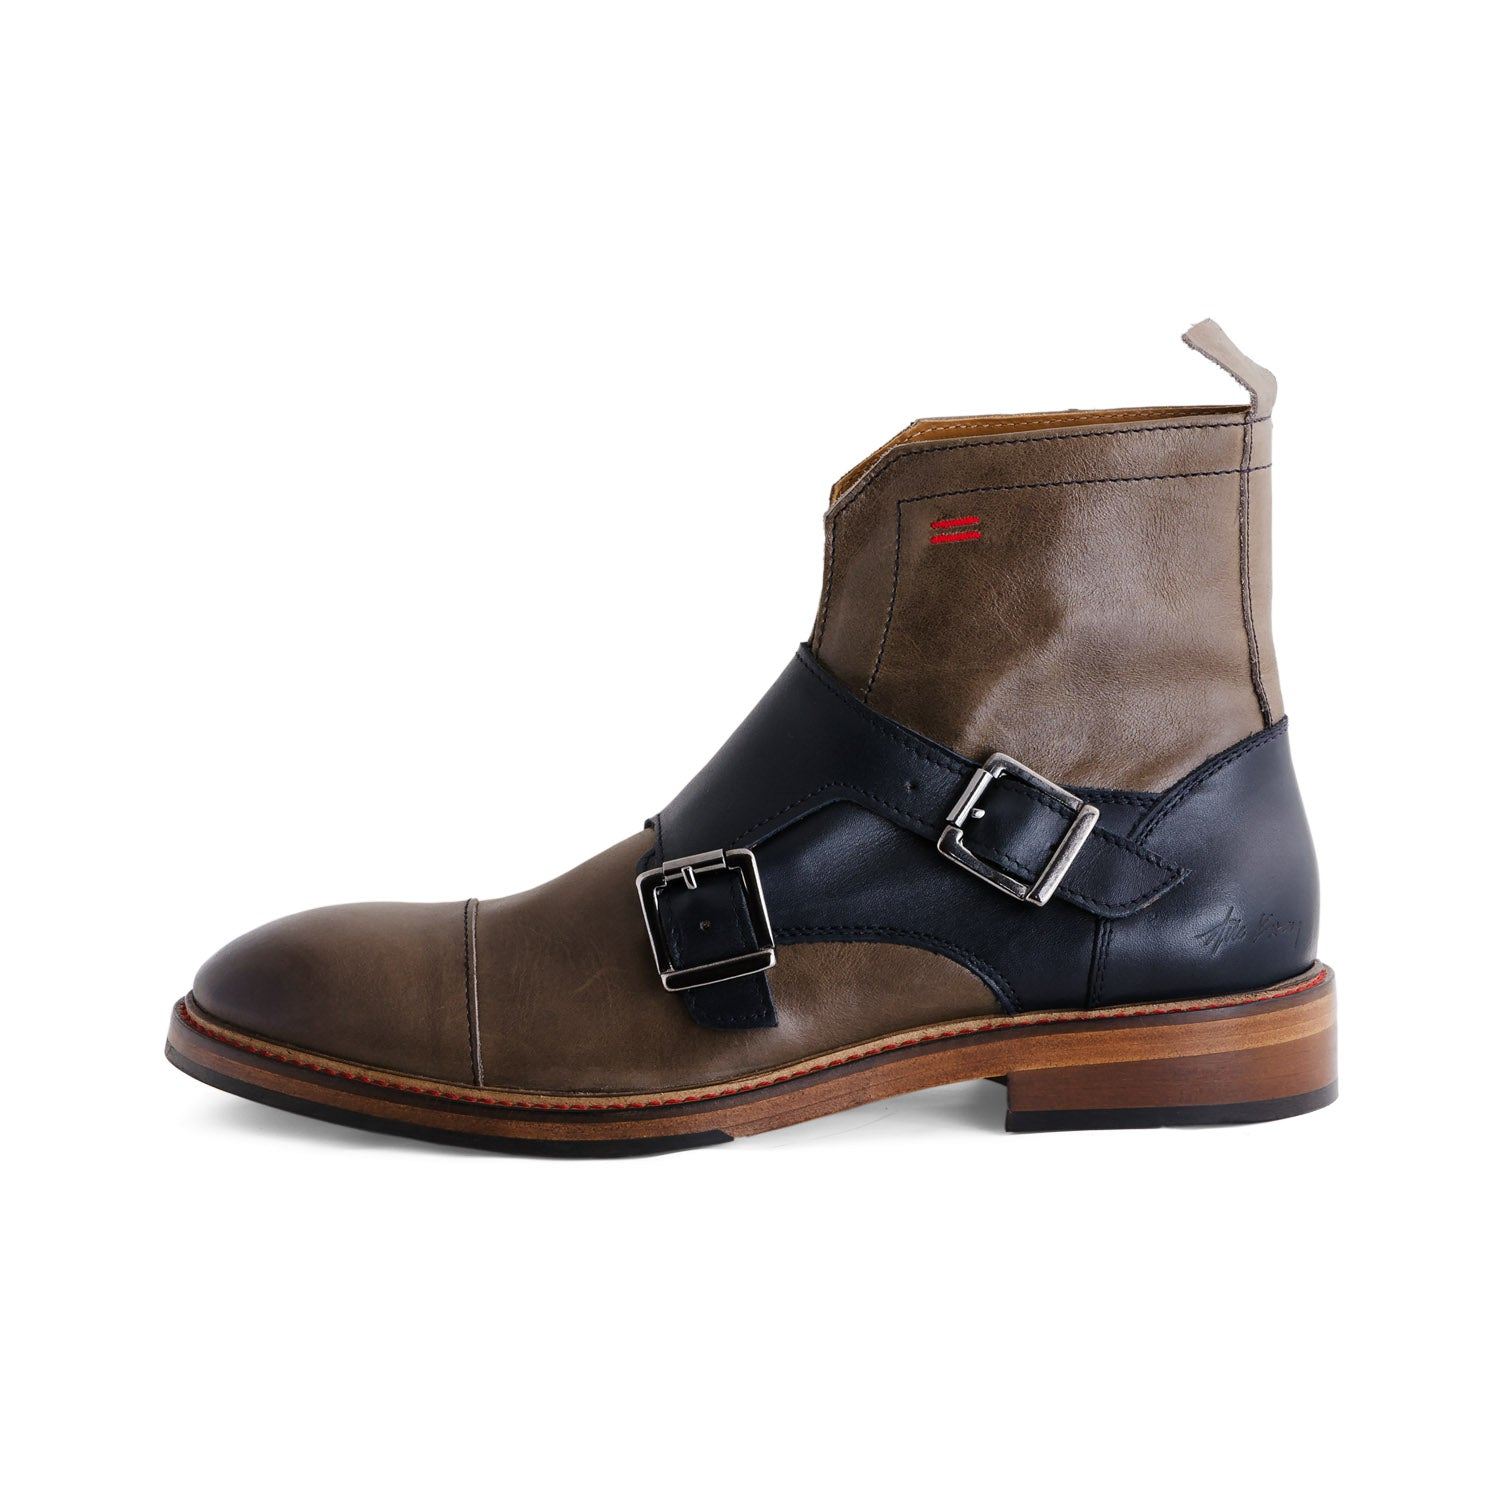 The Limited-Edition Monk Boot (5 color options) - NiK Kacy